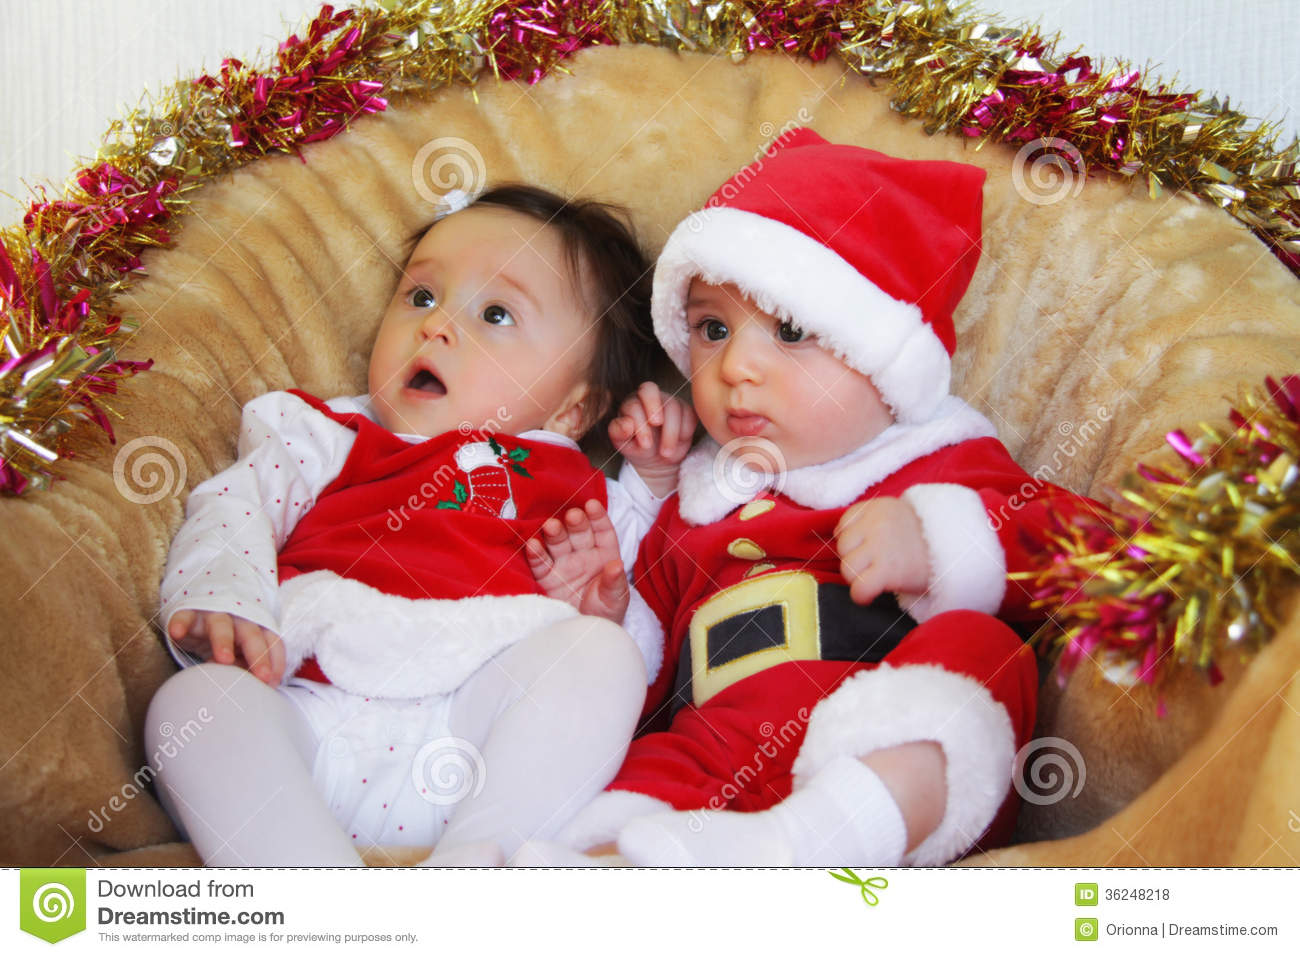 Cute Baby Girl Wallpapers For Facebook Profile Hd Christmas Funny Small Kids In Santa Claus Clothes Royalty